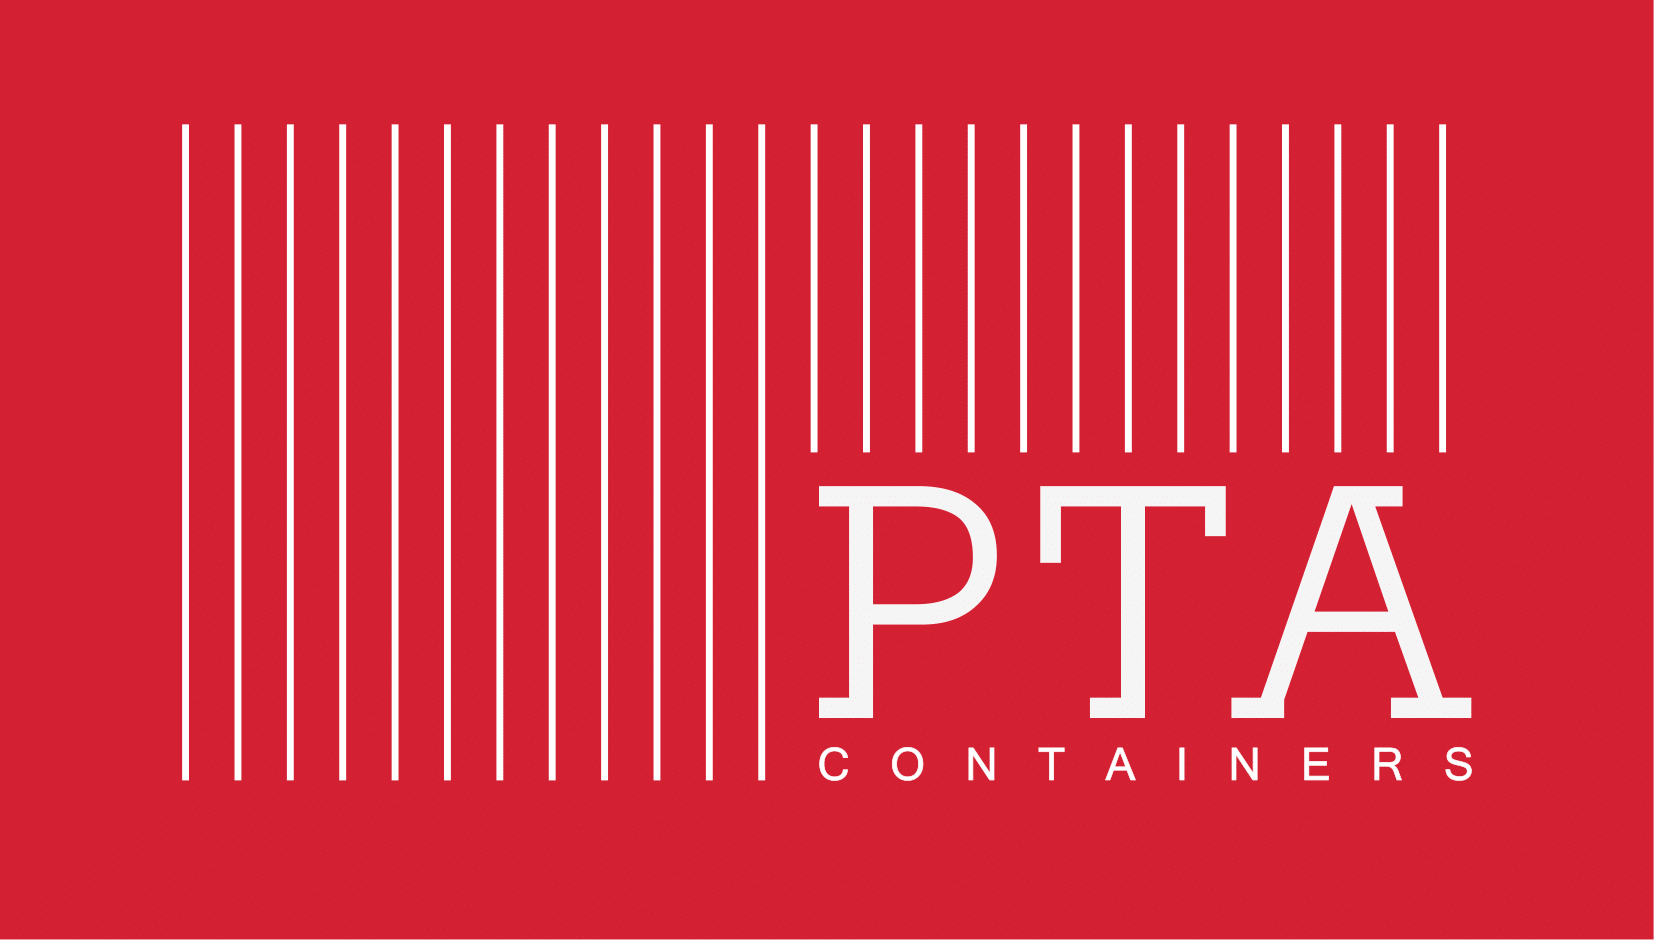 Containers - PTA